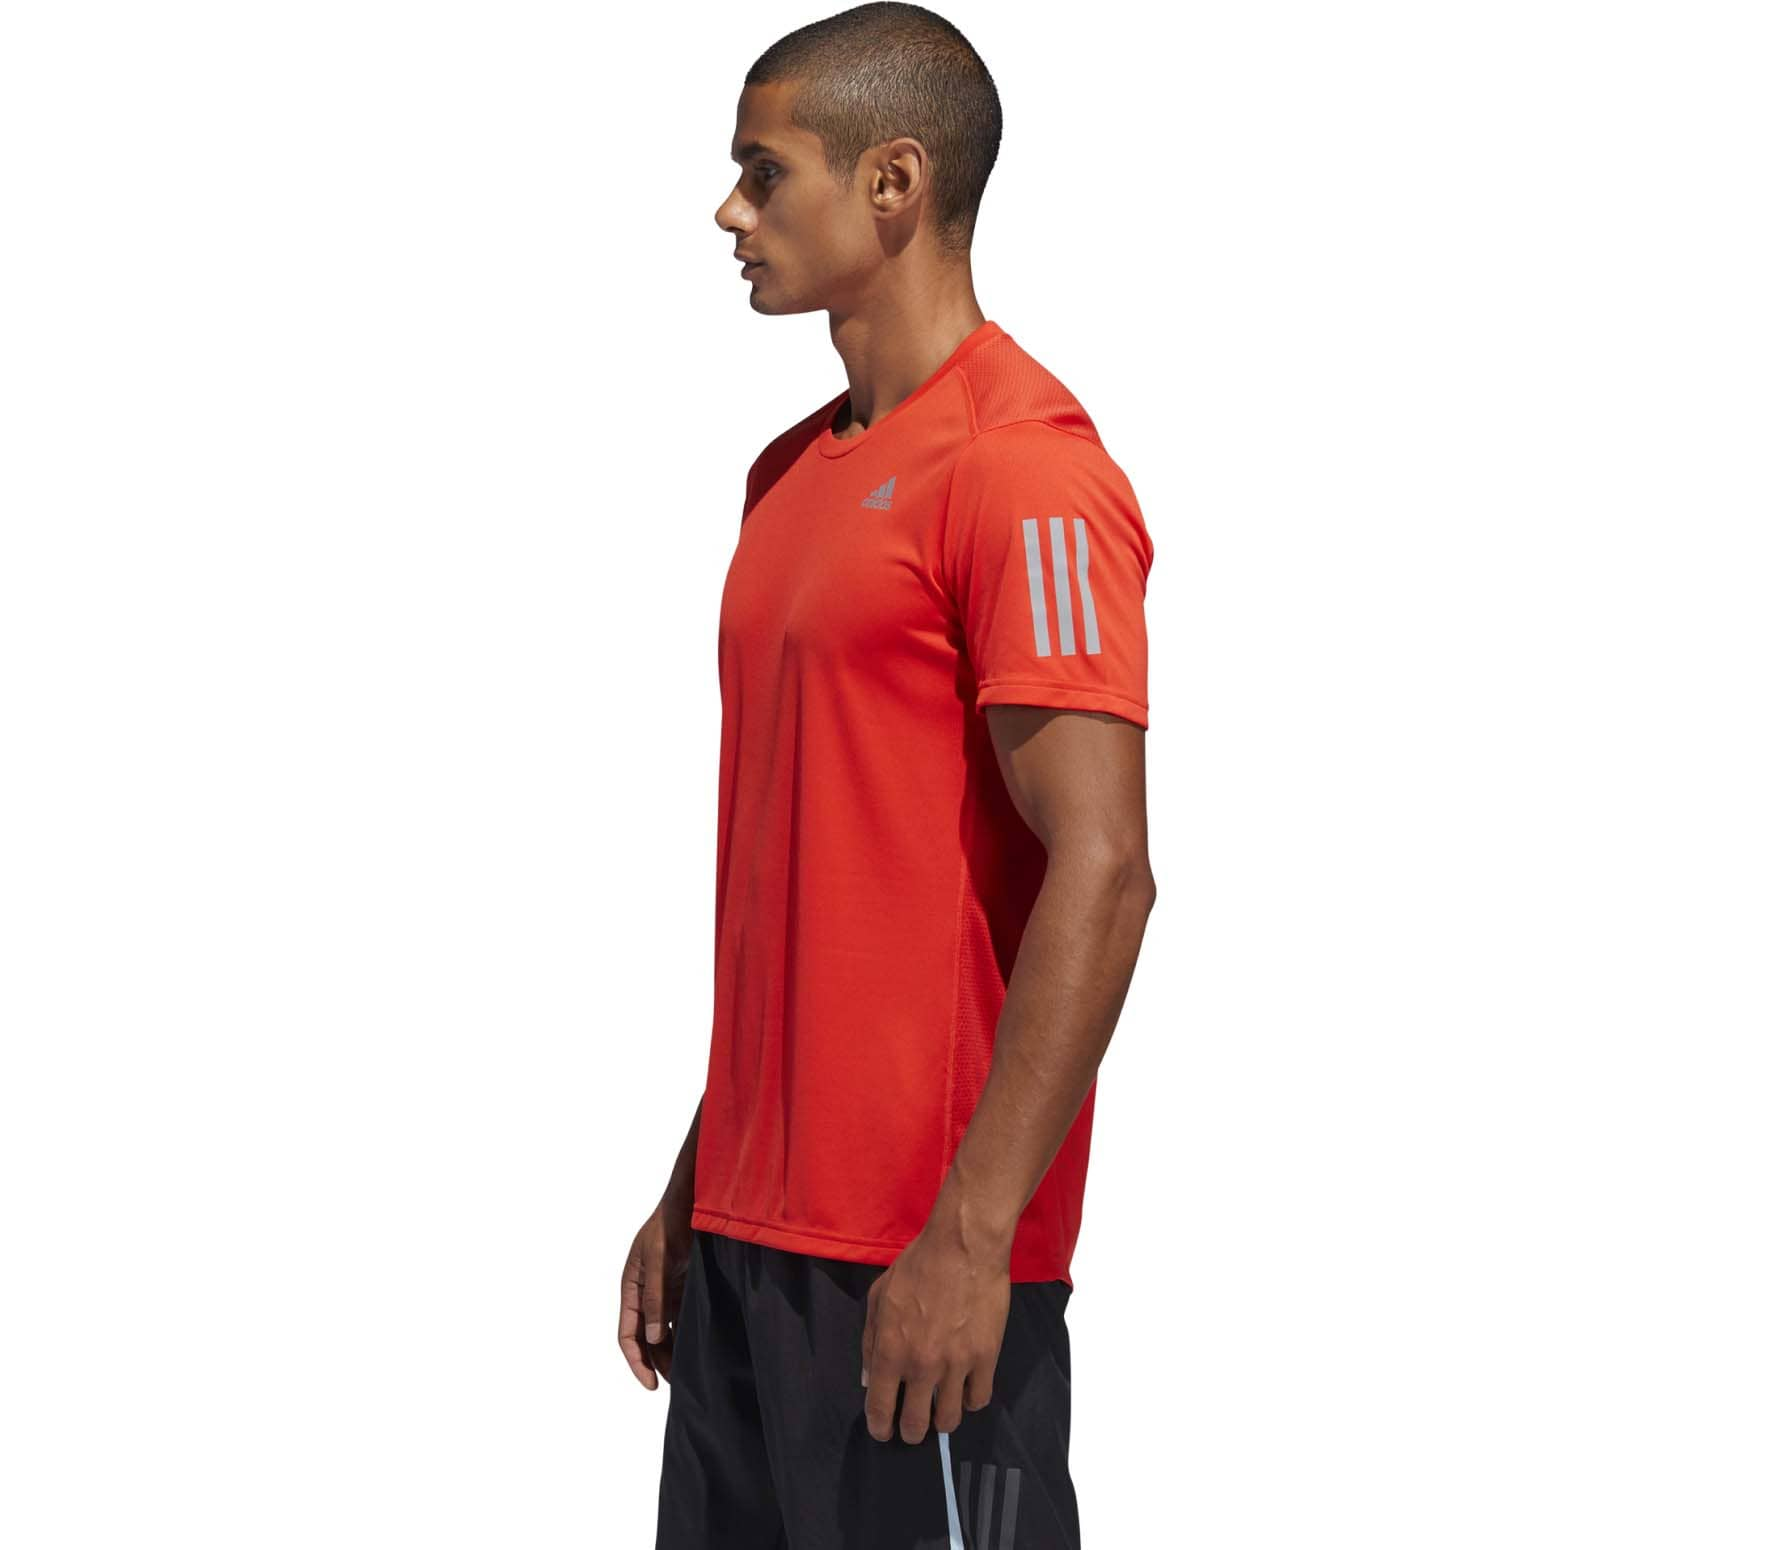 adidas - Own The Run Hommes chemise de course (rouge)